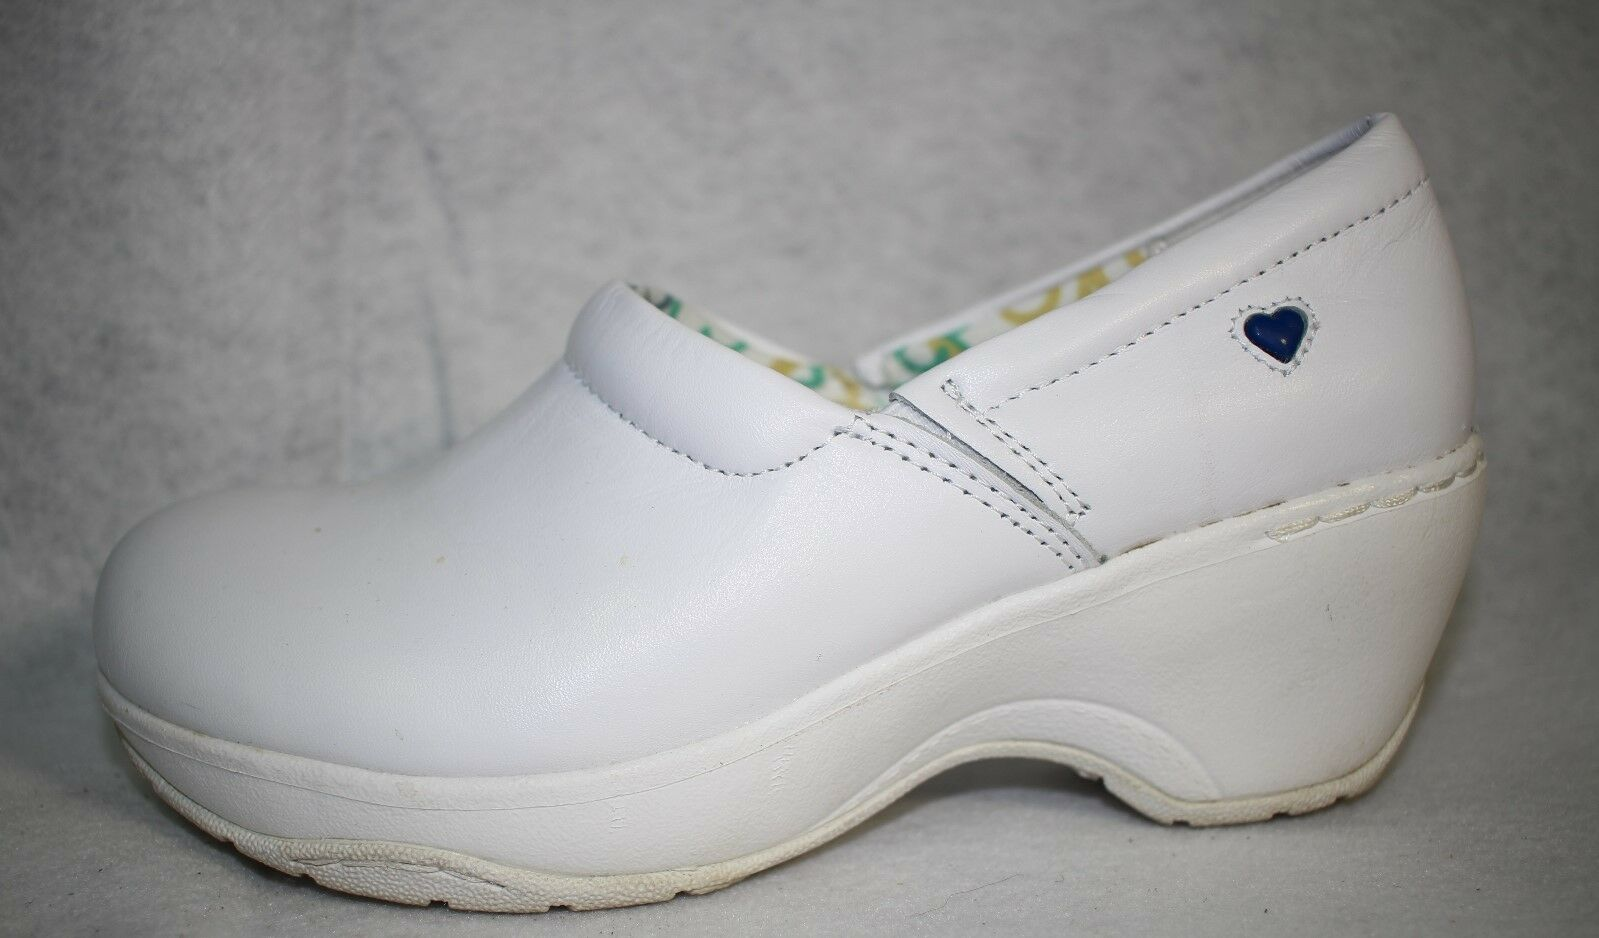 Nurse Mates Bryer White Leather Occupational Women Slip On shoes 7.5 M